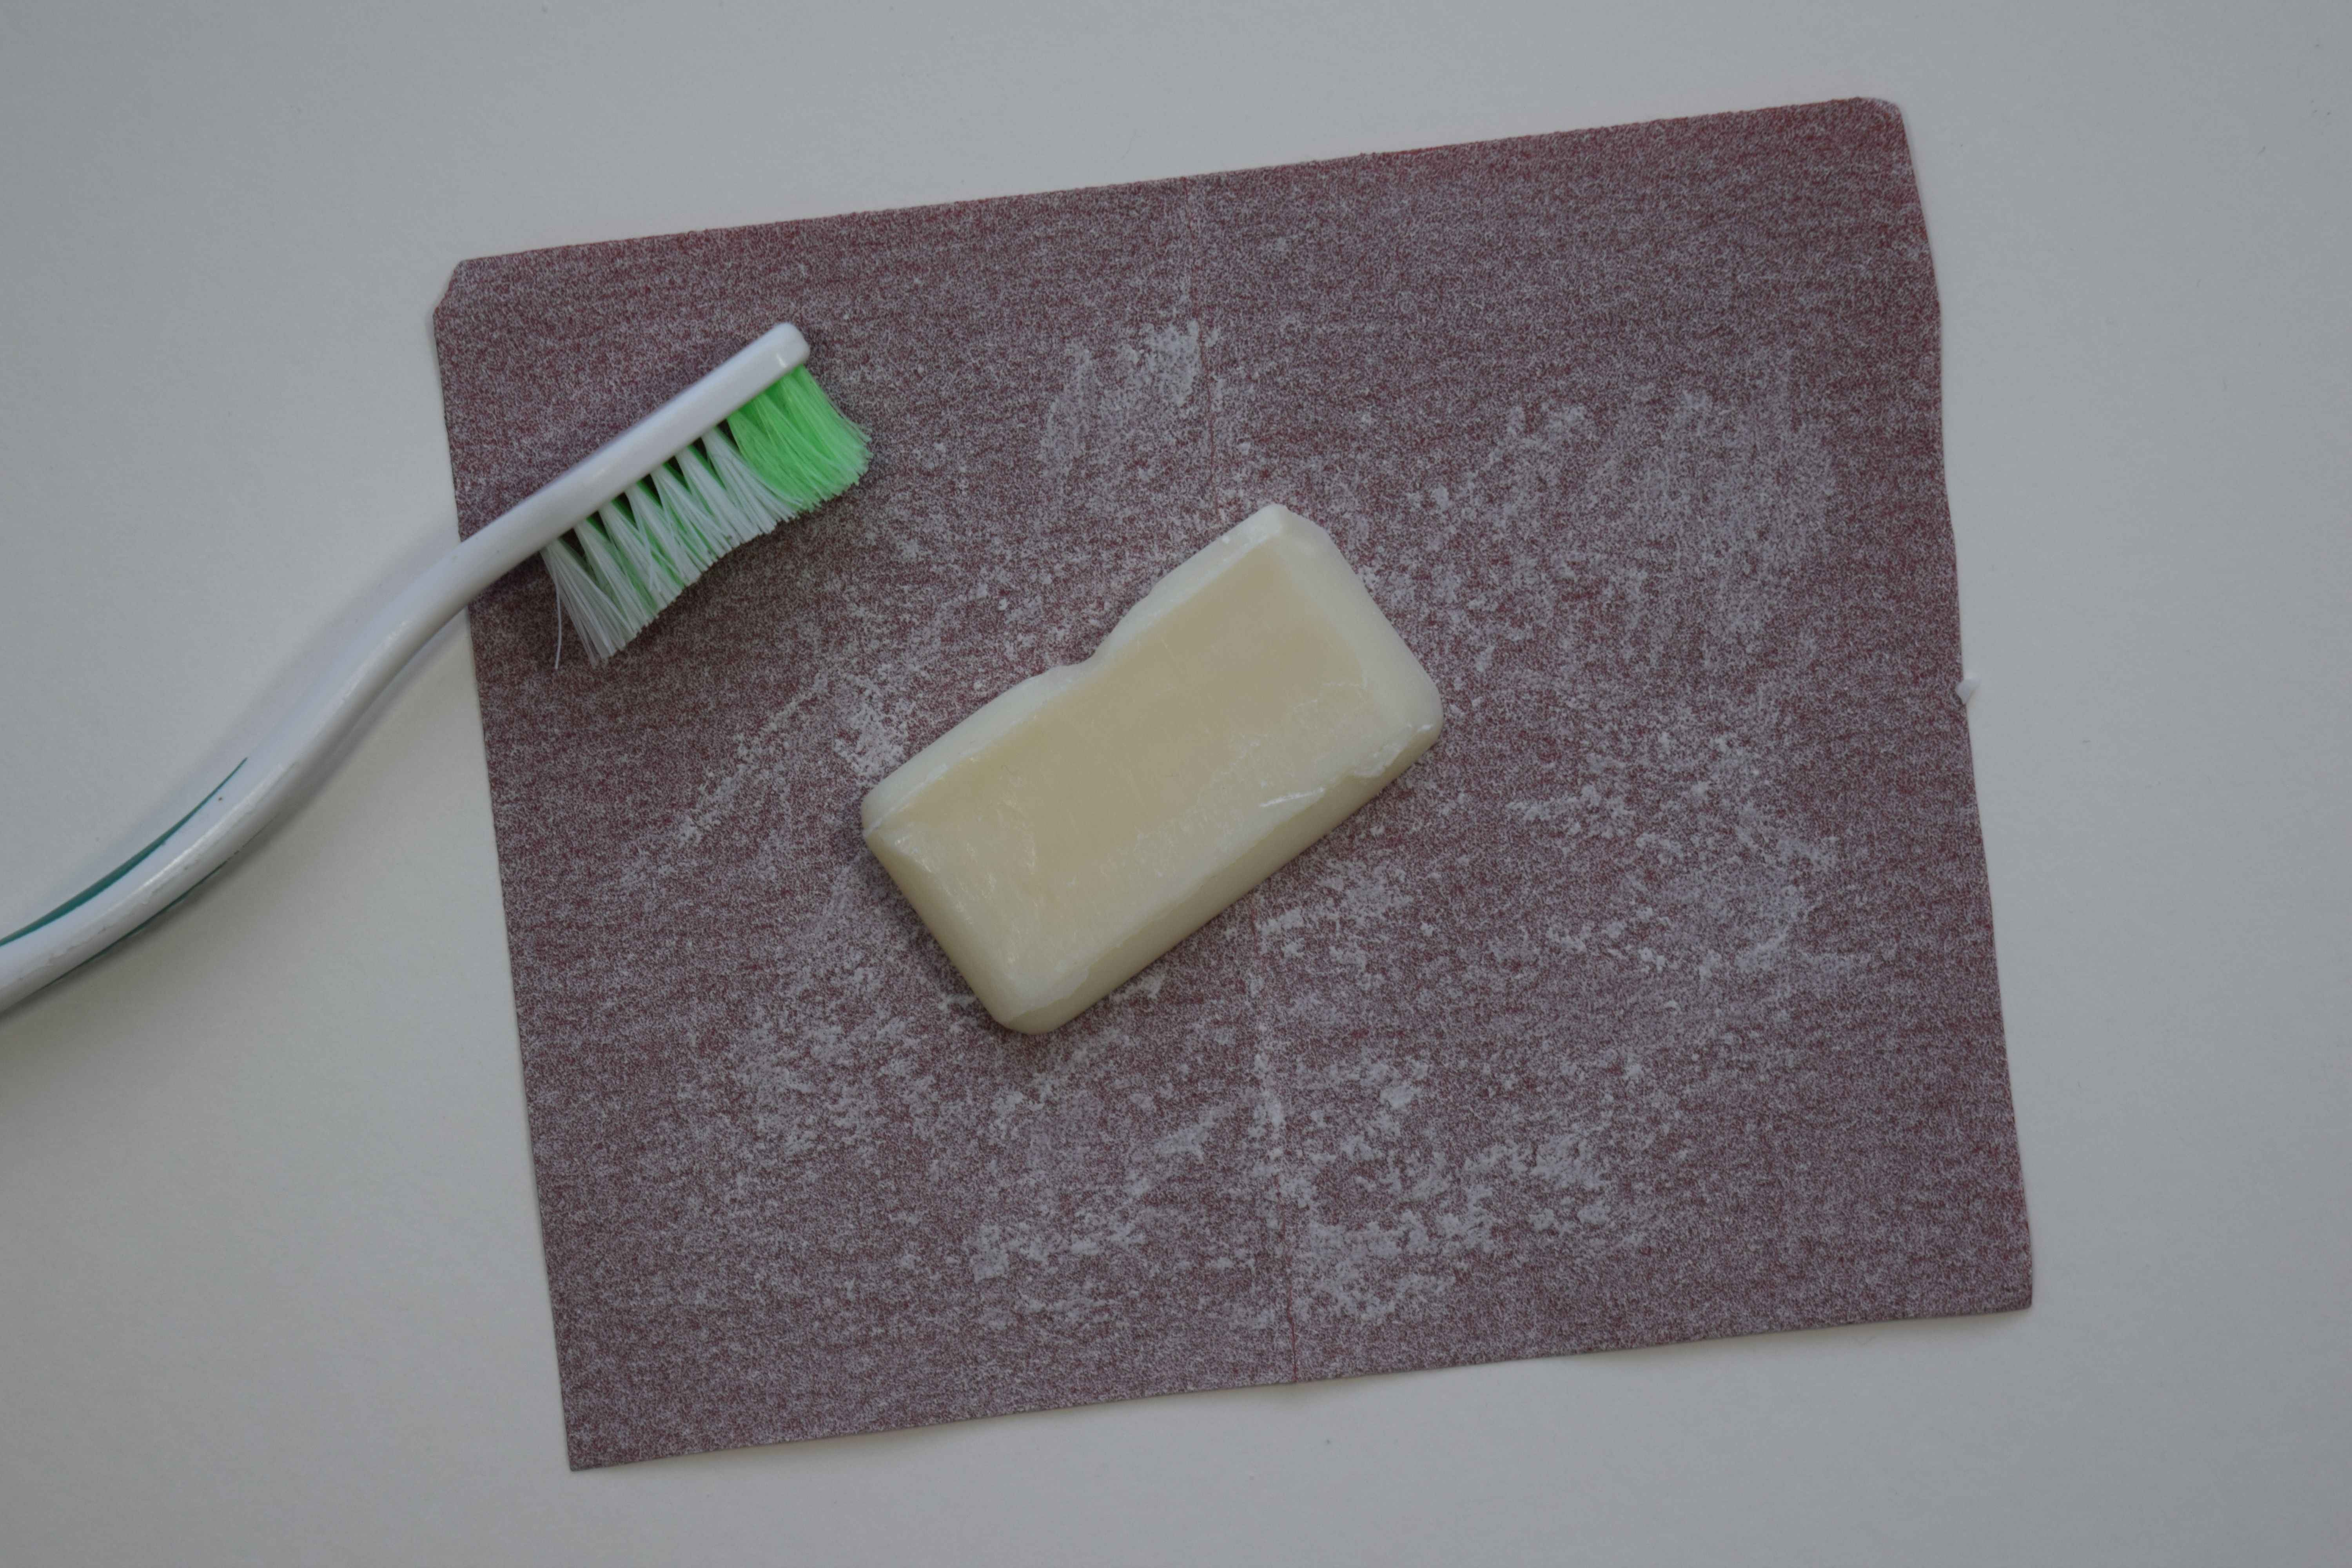 Sharpening soap with sandpaper